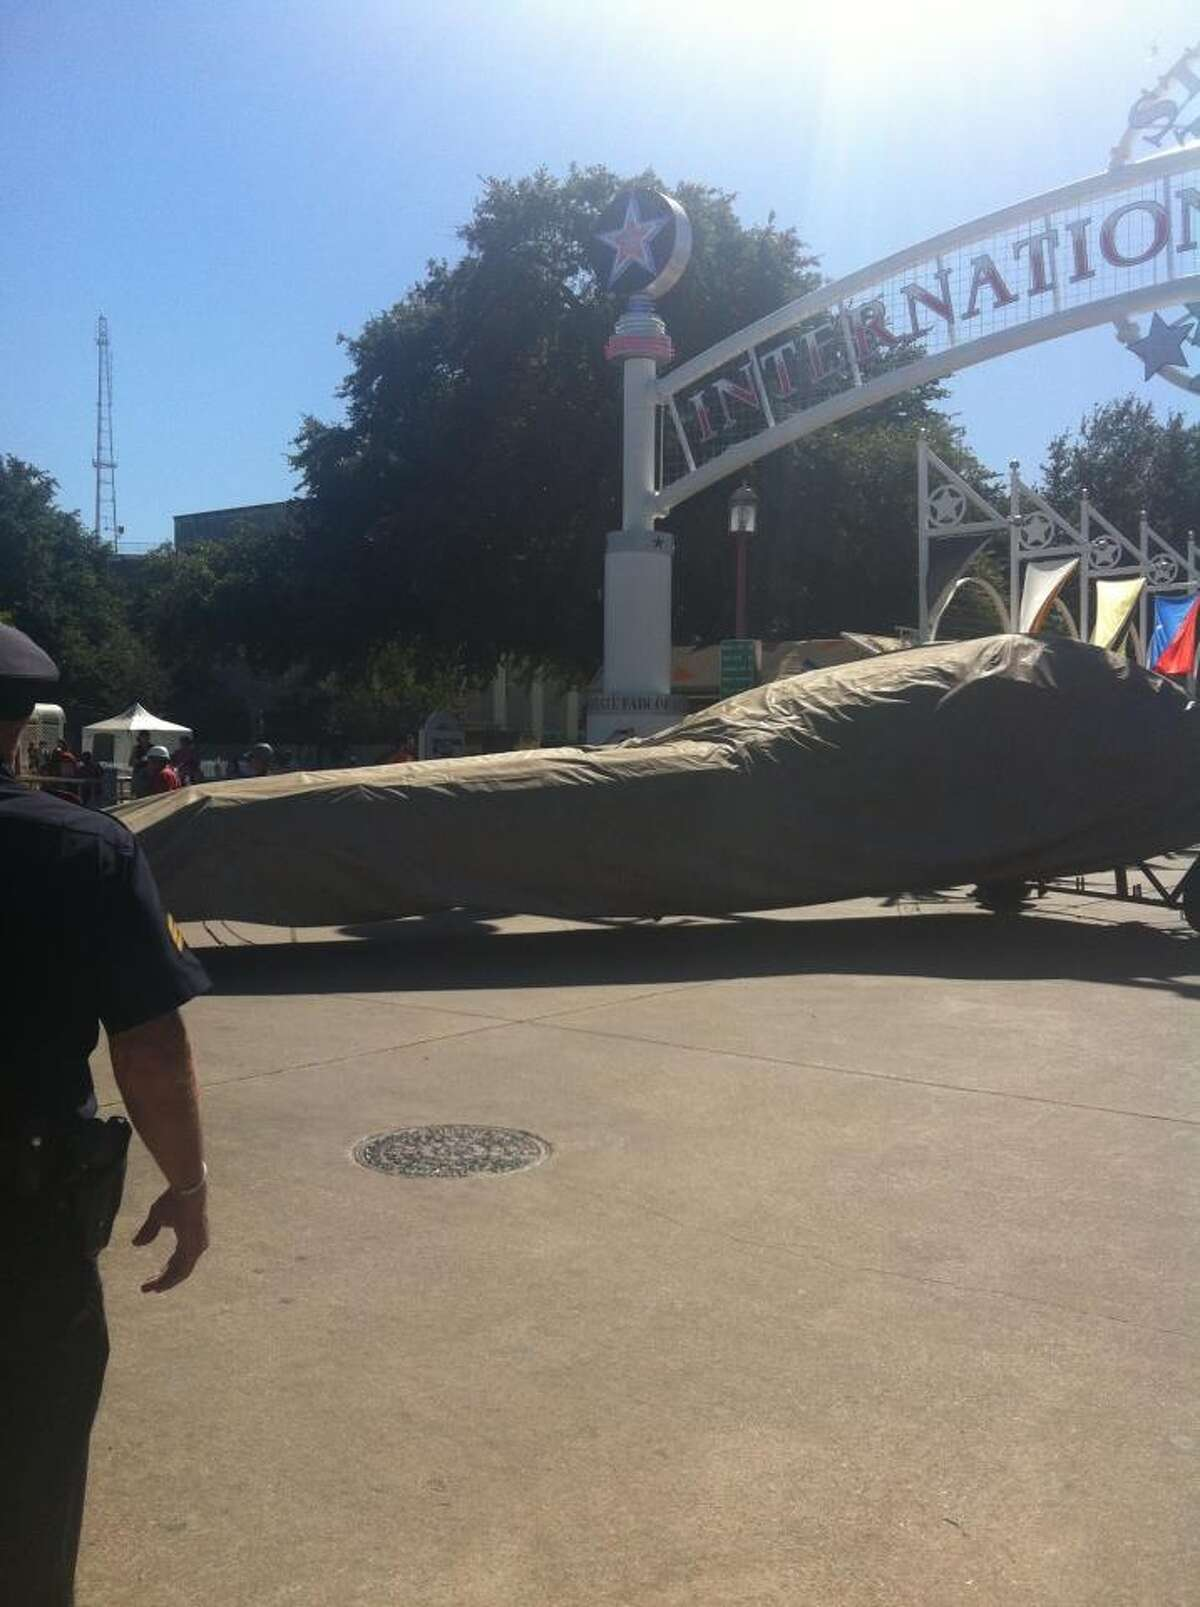 Big Tex being dismantled at Fair Park in Dallas after fire destroyed the iconic figure. | Courtesy Candy Cates O'Neill